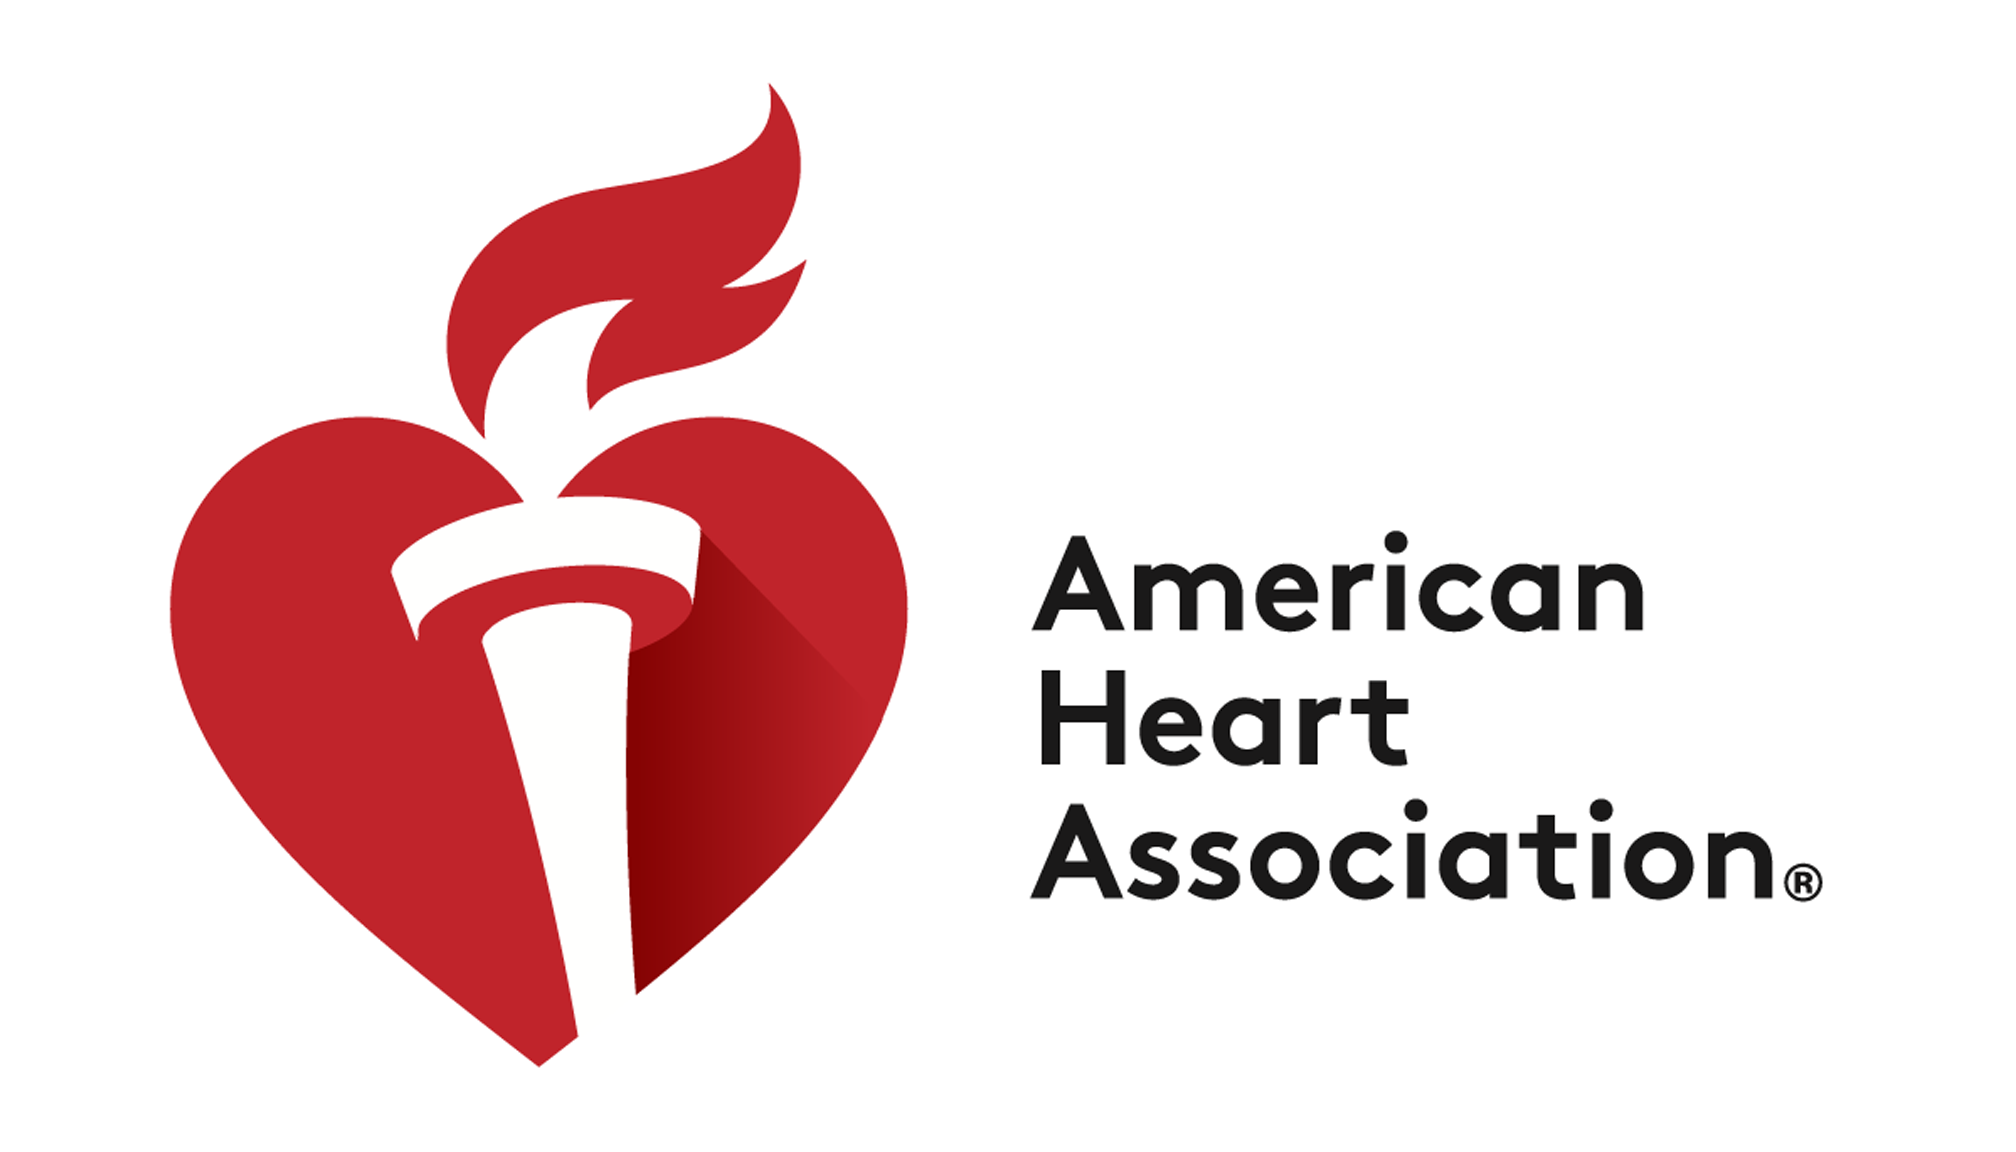 SPM - American Heart Association